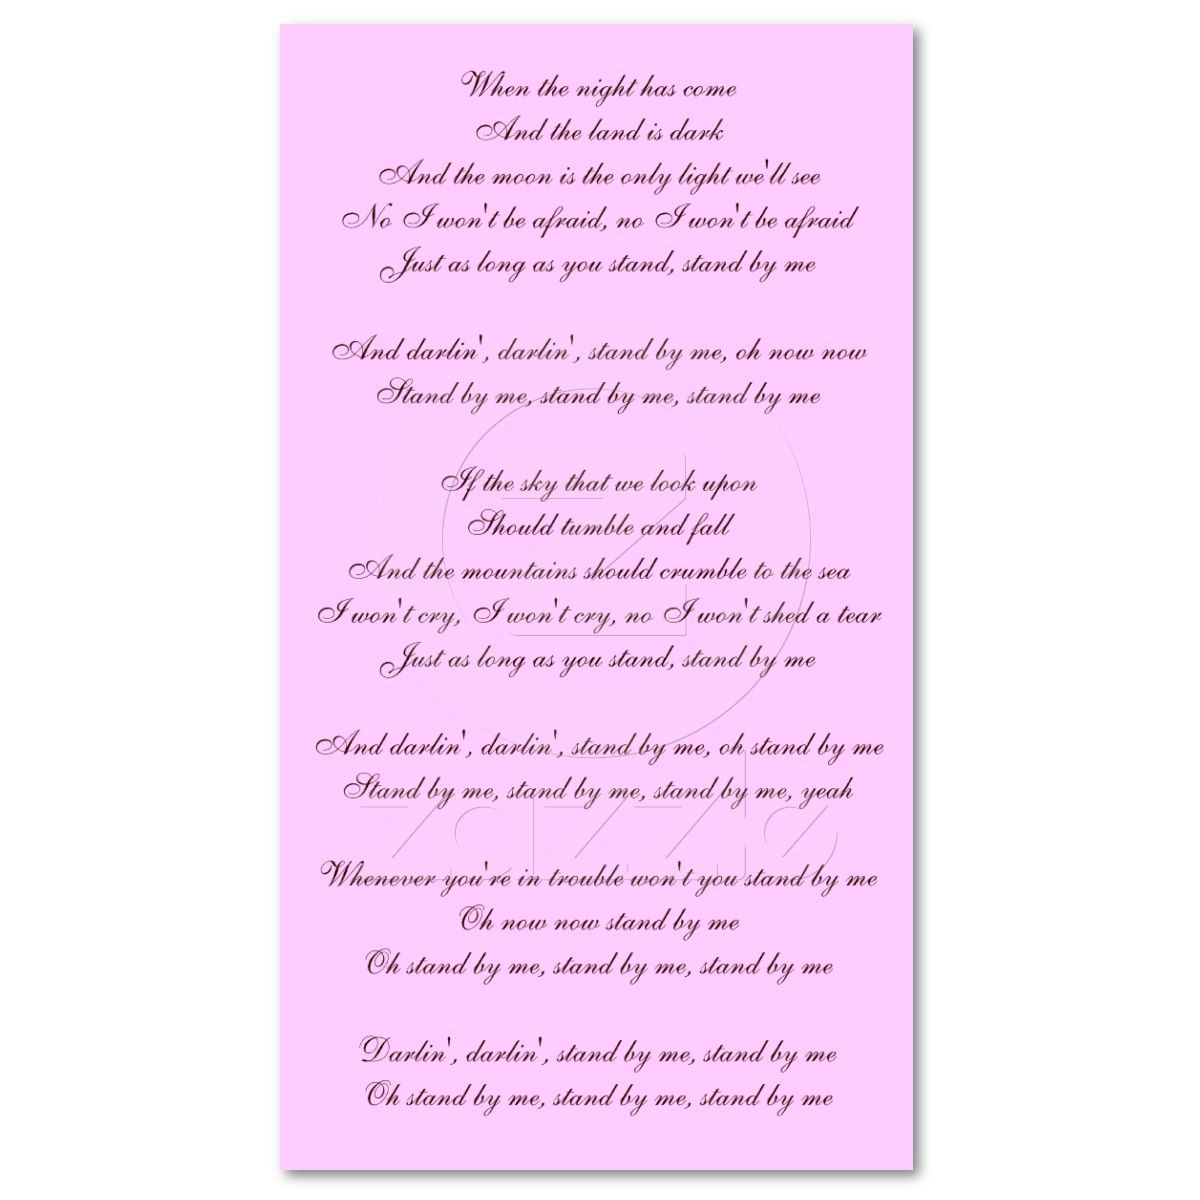 Mother Son Song For Wedding: Mother Son In Law/ Father Daughter Song...Stand By Me 3rd